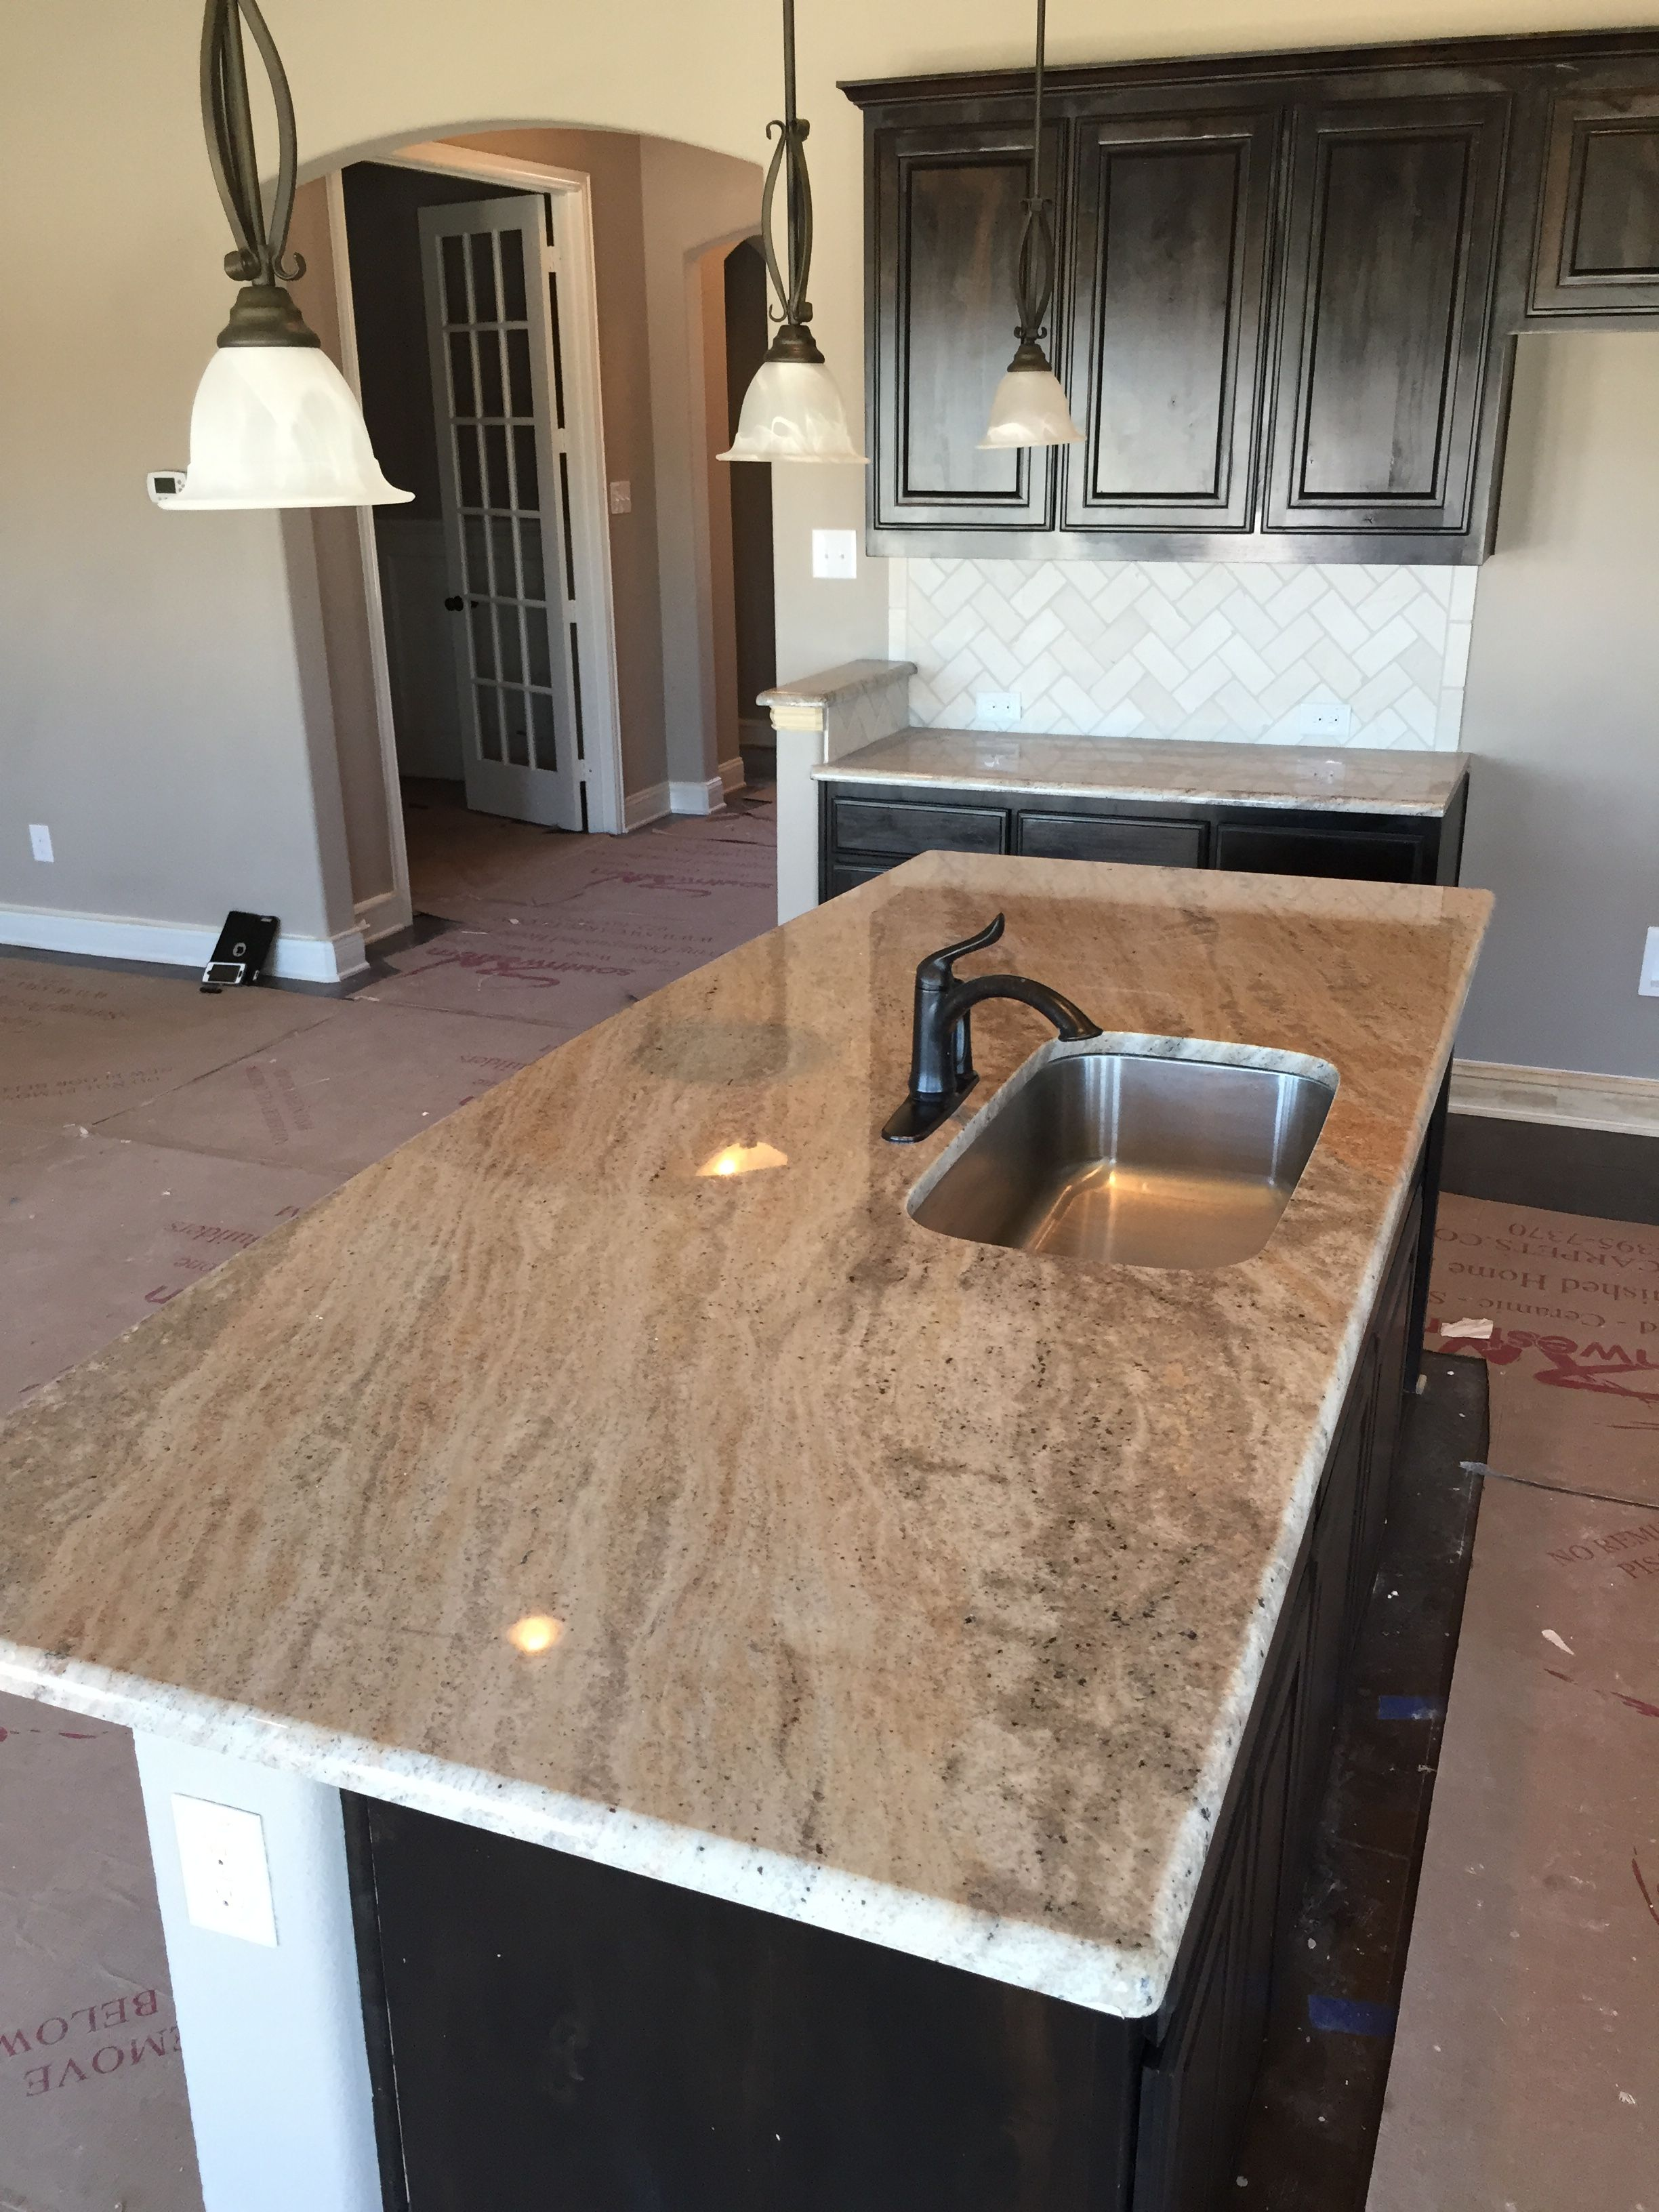 New Construction Kitchen Island Installation 3cm Astoria Granite Brown Bathroom Decor Installing Countertops